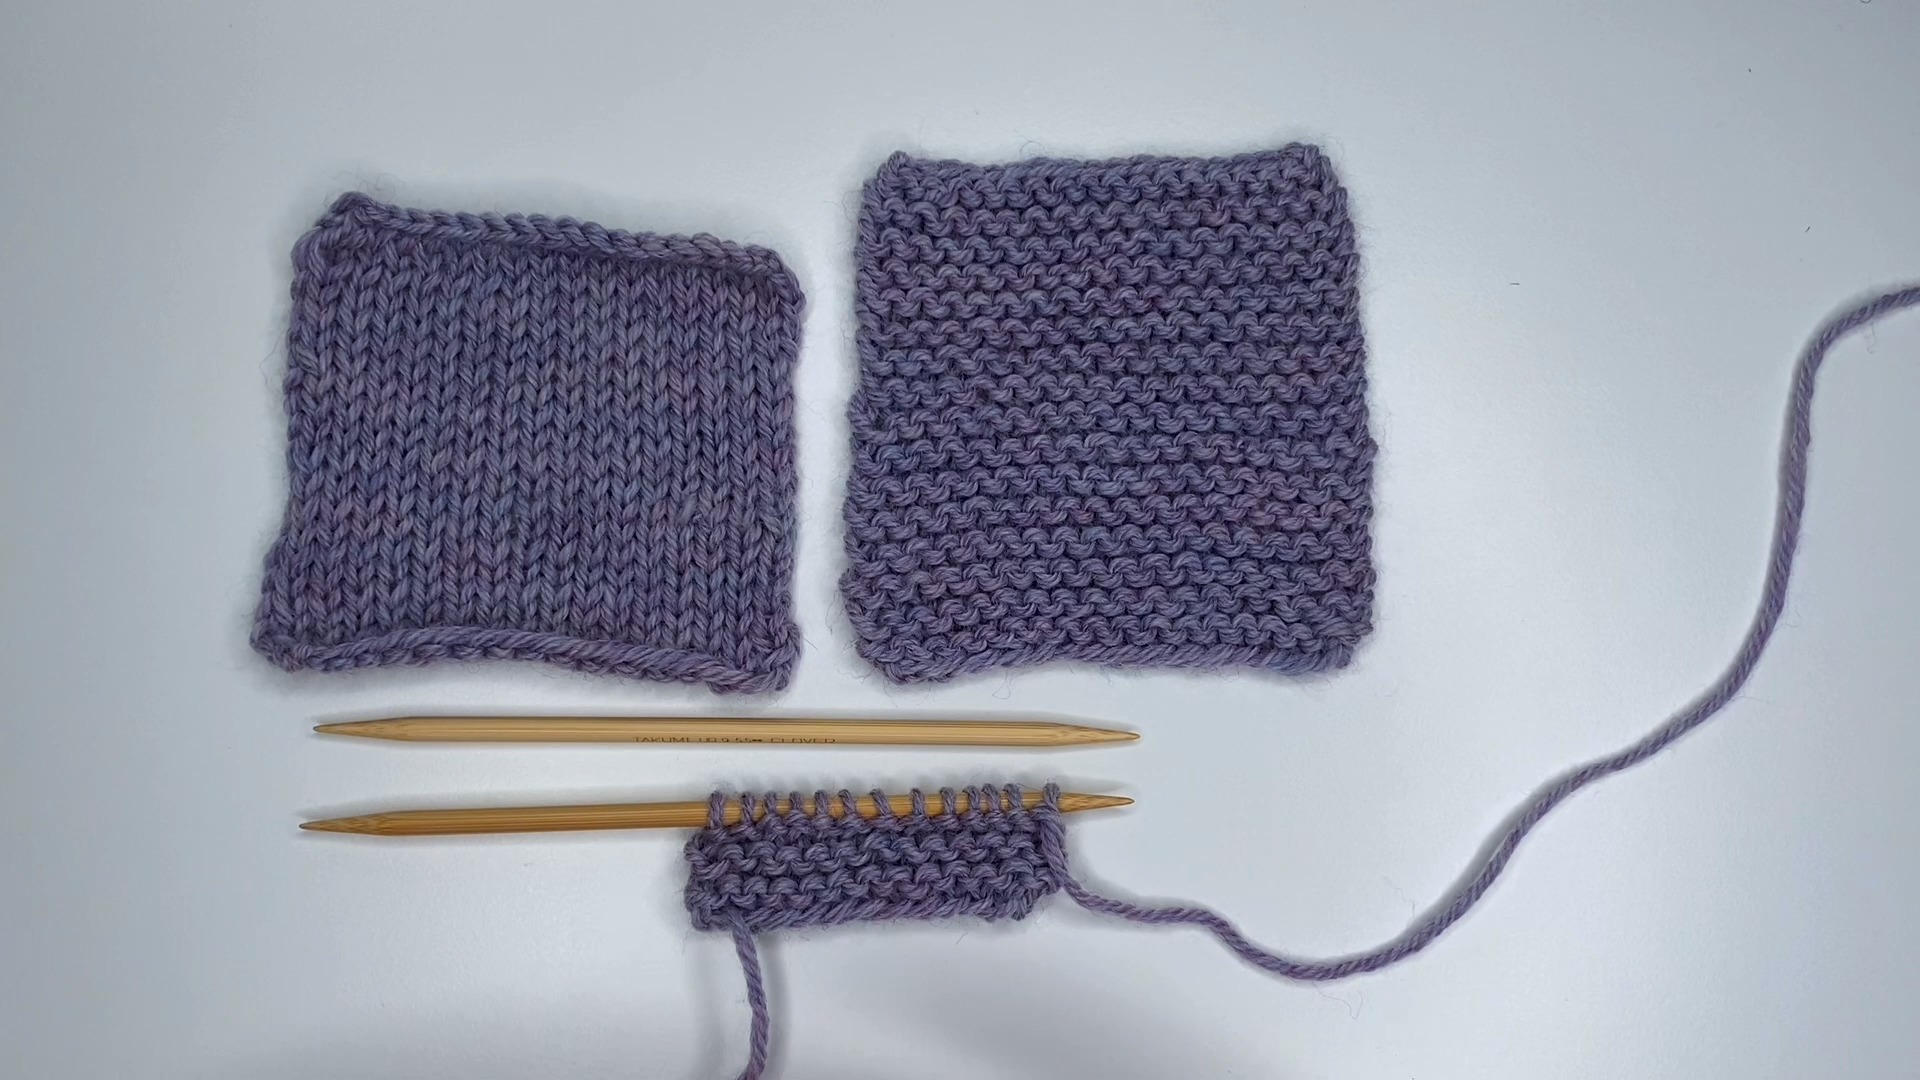 14-Day Learn to Knit Series: Day 4